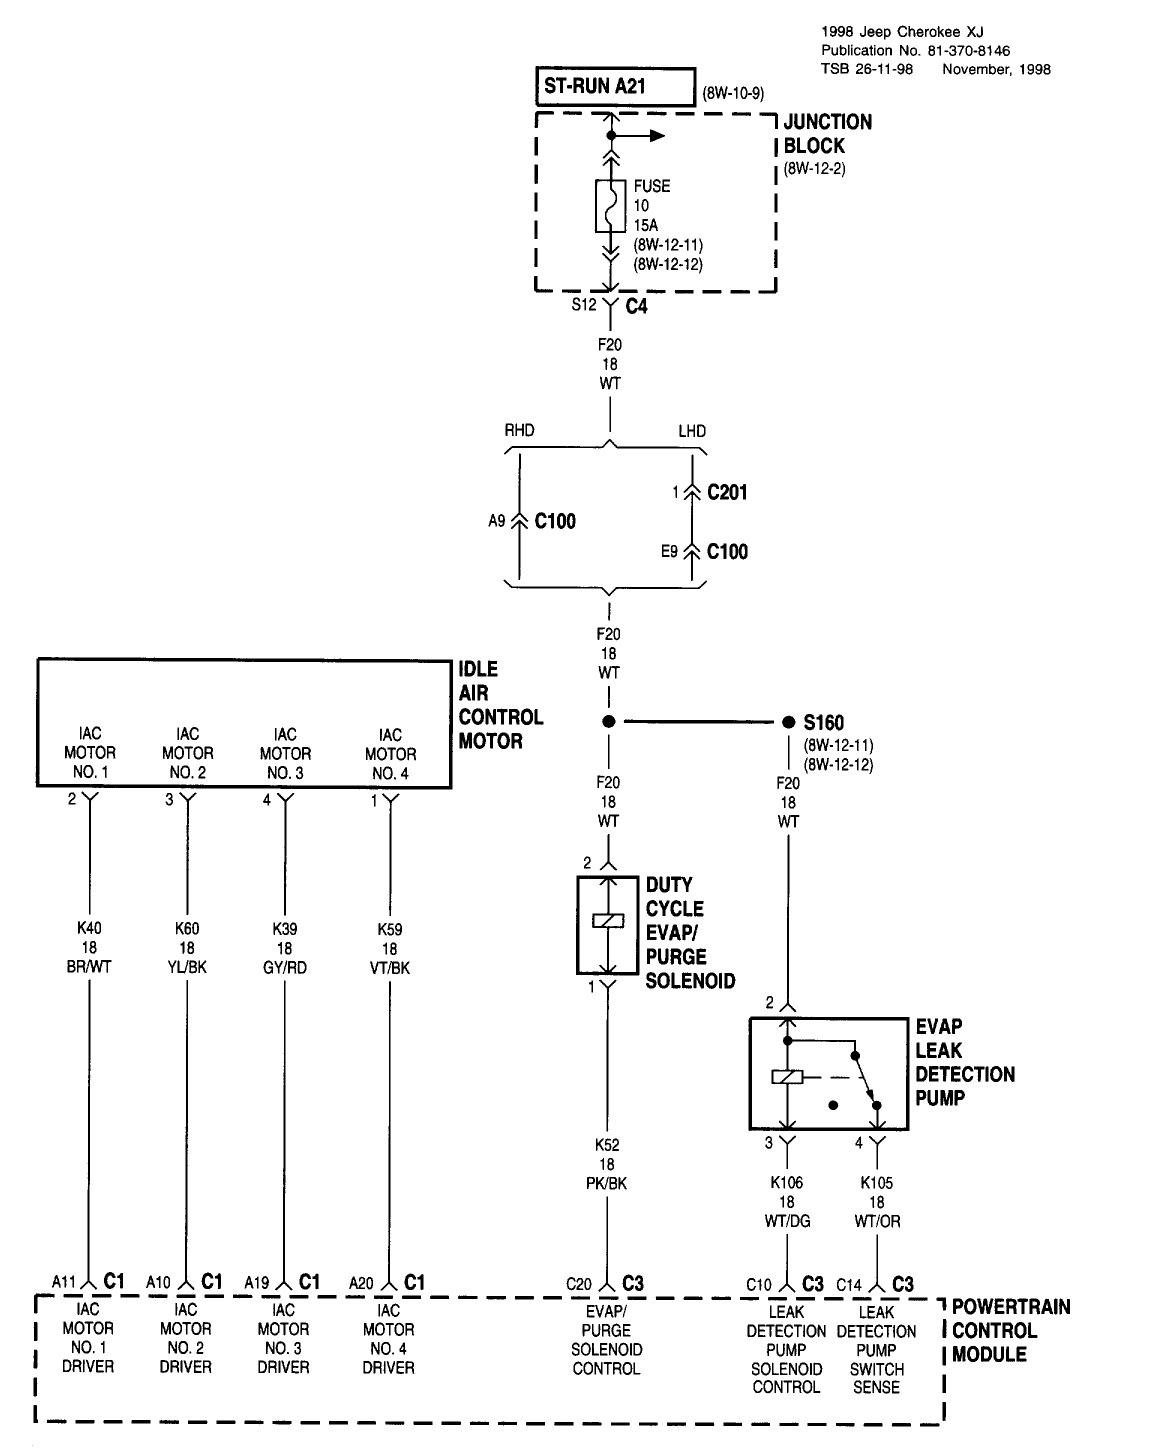 Wiring diagram Leak detection pump - Jeep Cherokee Forum on chevy metro wiring diagram, jeep wiring schematic, jeep grand cherokee, jeep liberty wiring-diagram, ford econoline van wiring diagram, jeep cherokee rv wiring, isuzu hombre wiring diagram, jeep cherokee clutch fluid, jeep cherokee radio wires, jeep tj wiring-diagram, volkswagen golf wiring diagram, chevrolet volt wiring diagram, subaru baja wiring diagram, 01 dodge 1500 wiring diagram, jeep cherokee distributor diagram, jeep cherokee radio diagram, jeep cherokee evap diagram, jeep cherokee horn diagram, jeep cherokee heater diagram, saturn aura wiring diagram,